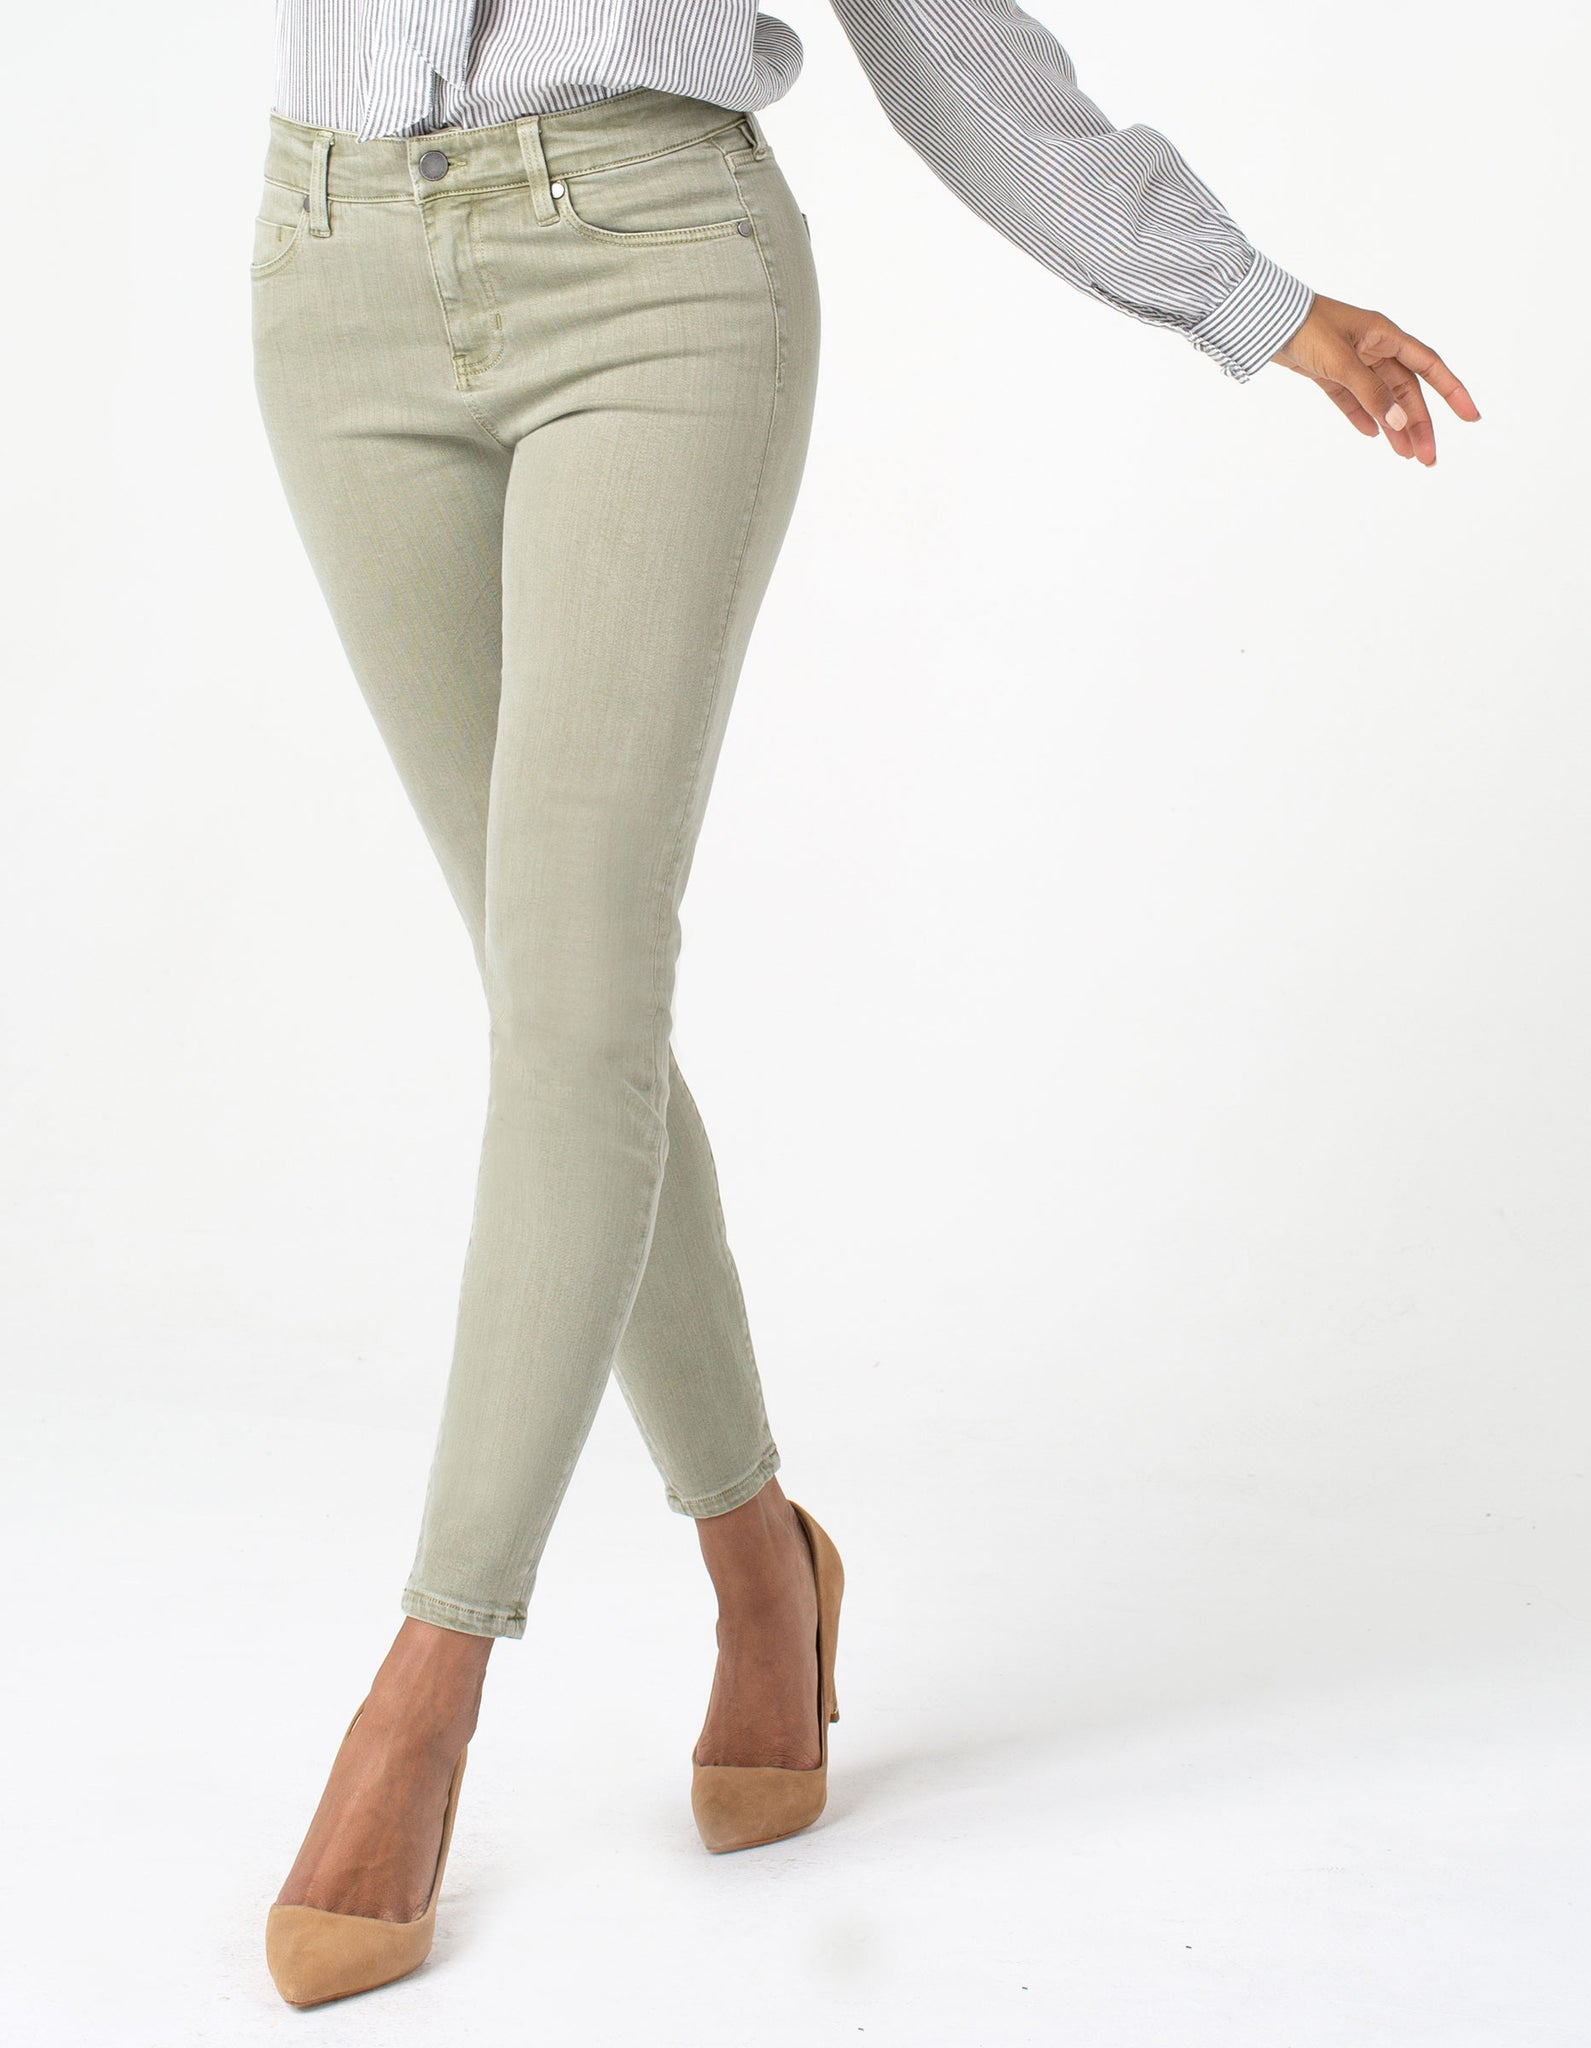 Liverpool PENNY Skinny Ankle Jean in Multiple Colors